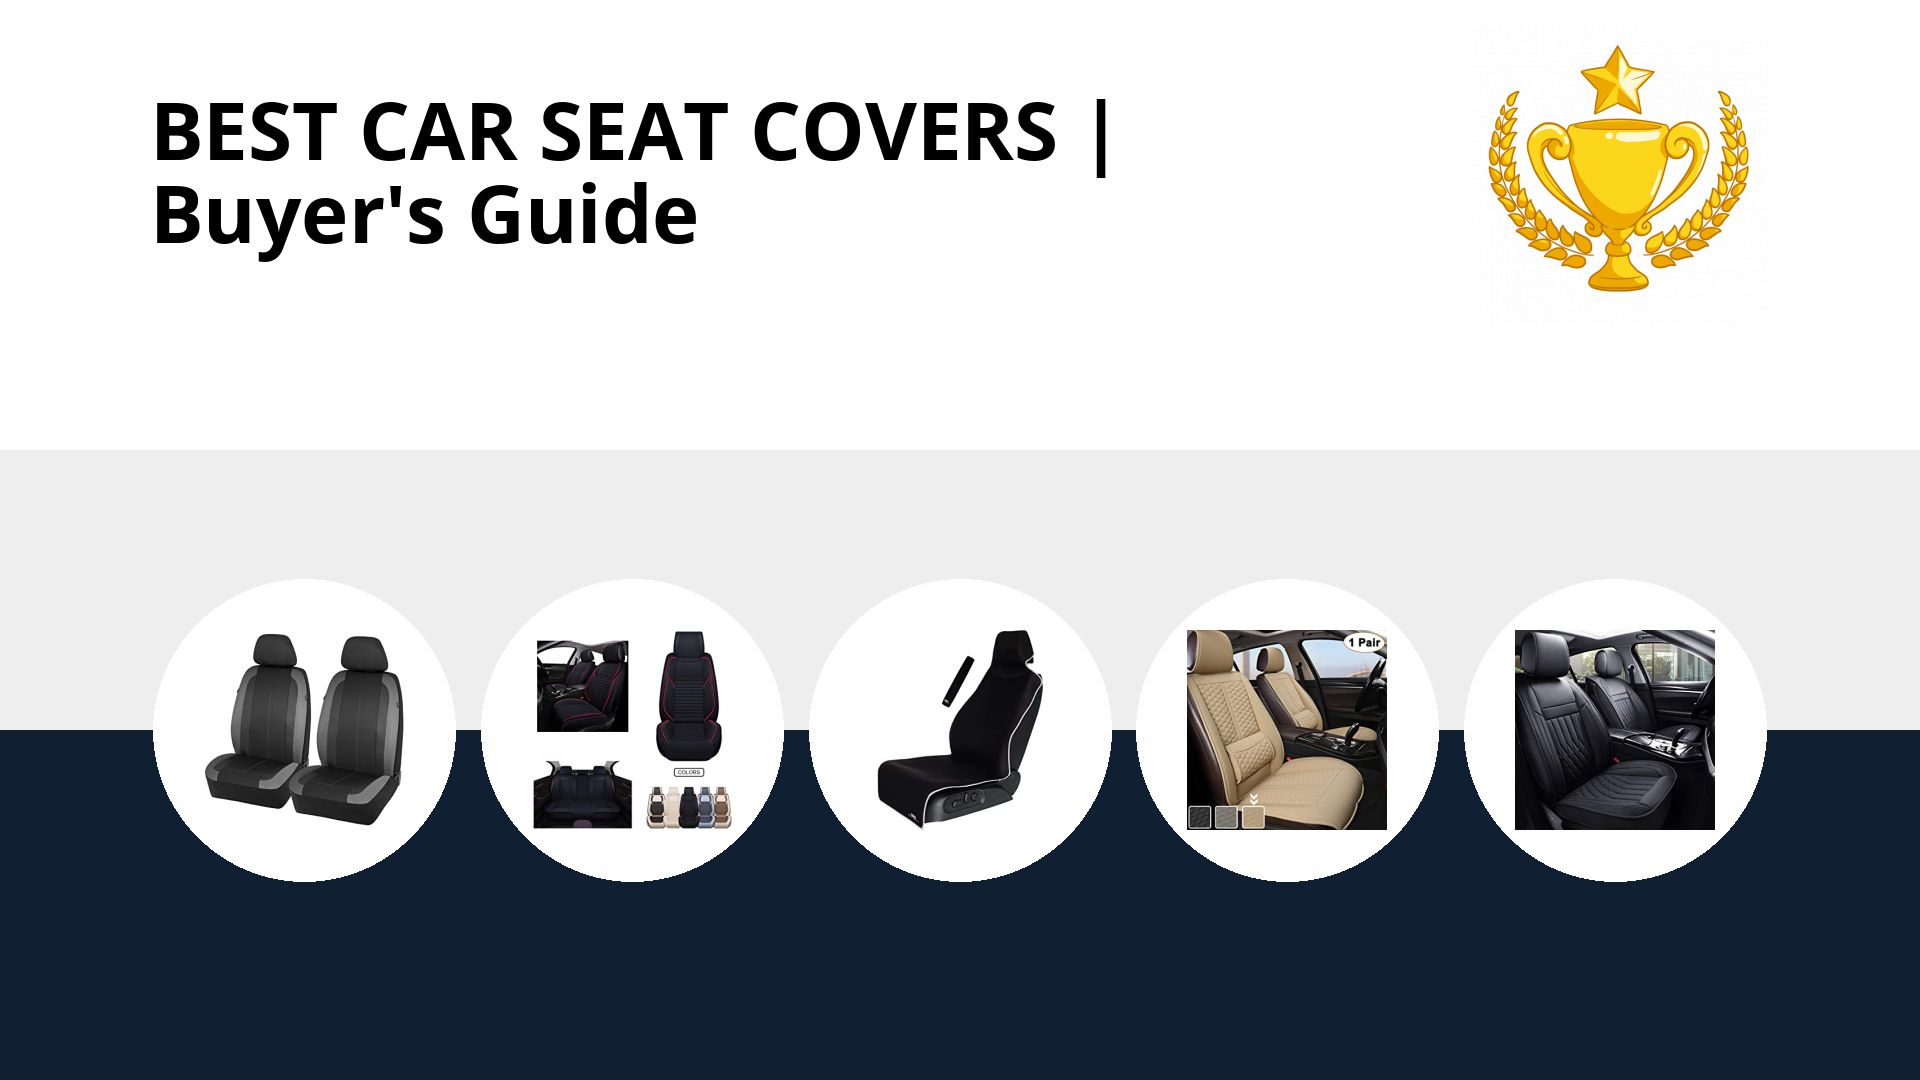 Best Car Seat Covers: image